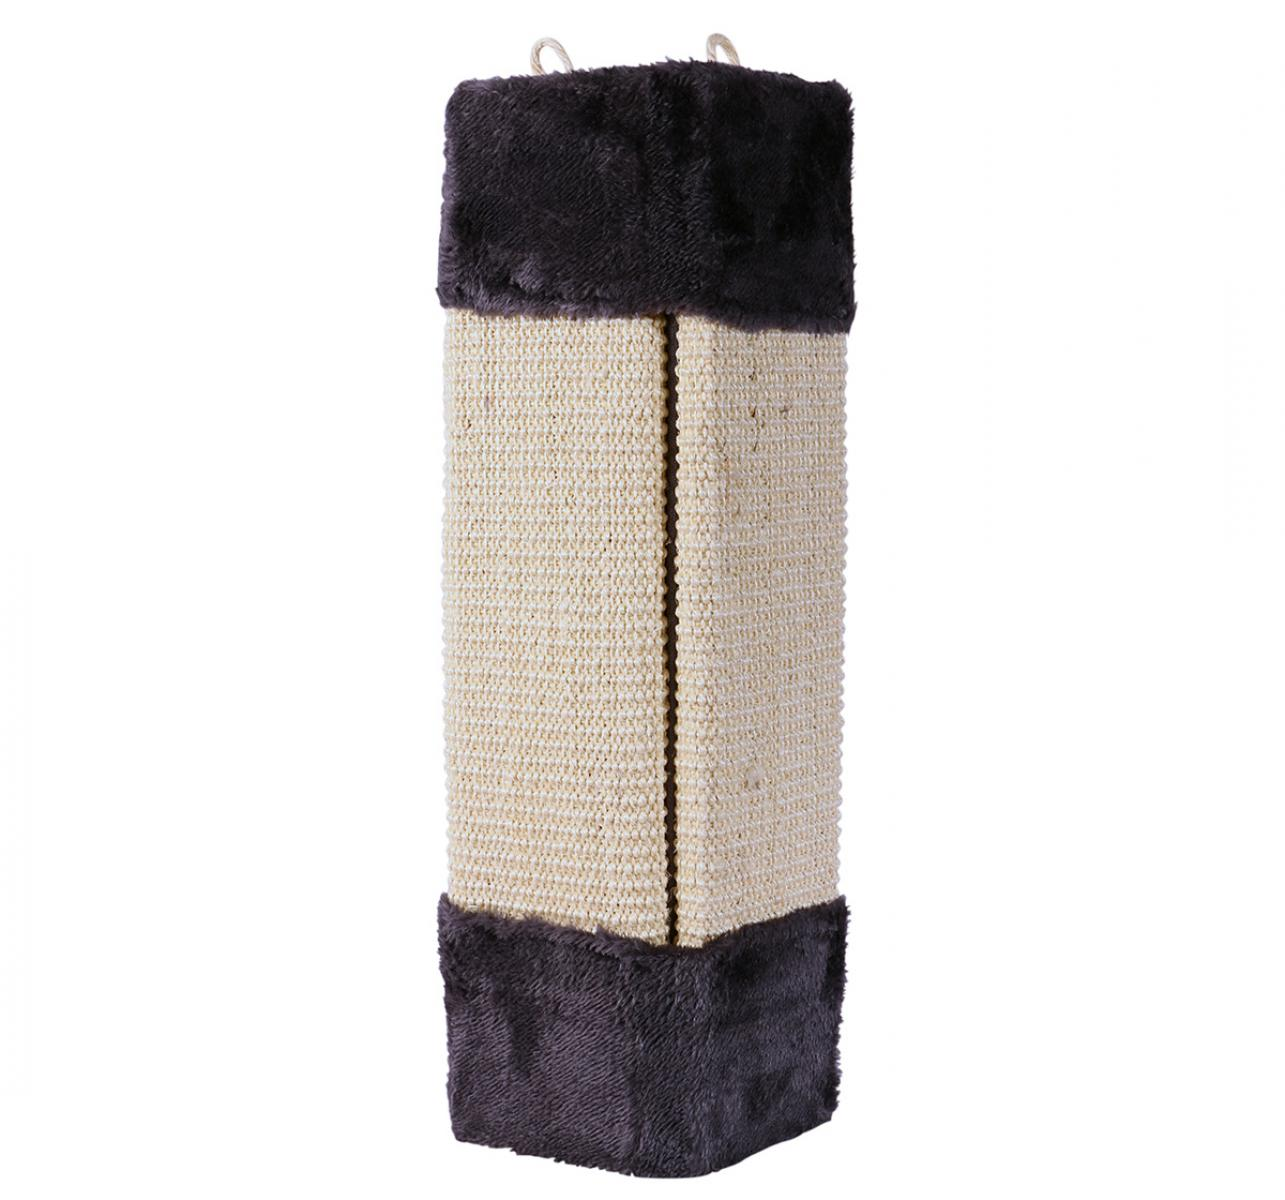 CatSpot Cat Wall Scratch Post (BxH - 9.8x23.6) Inches - Grey